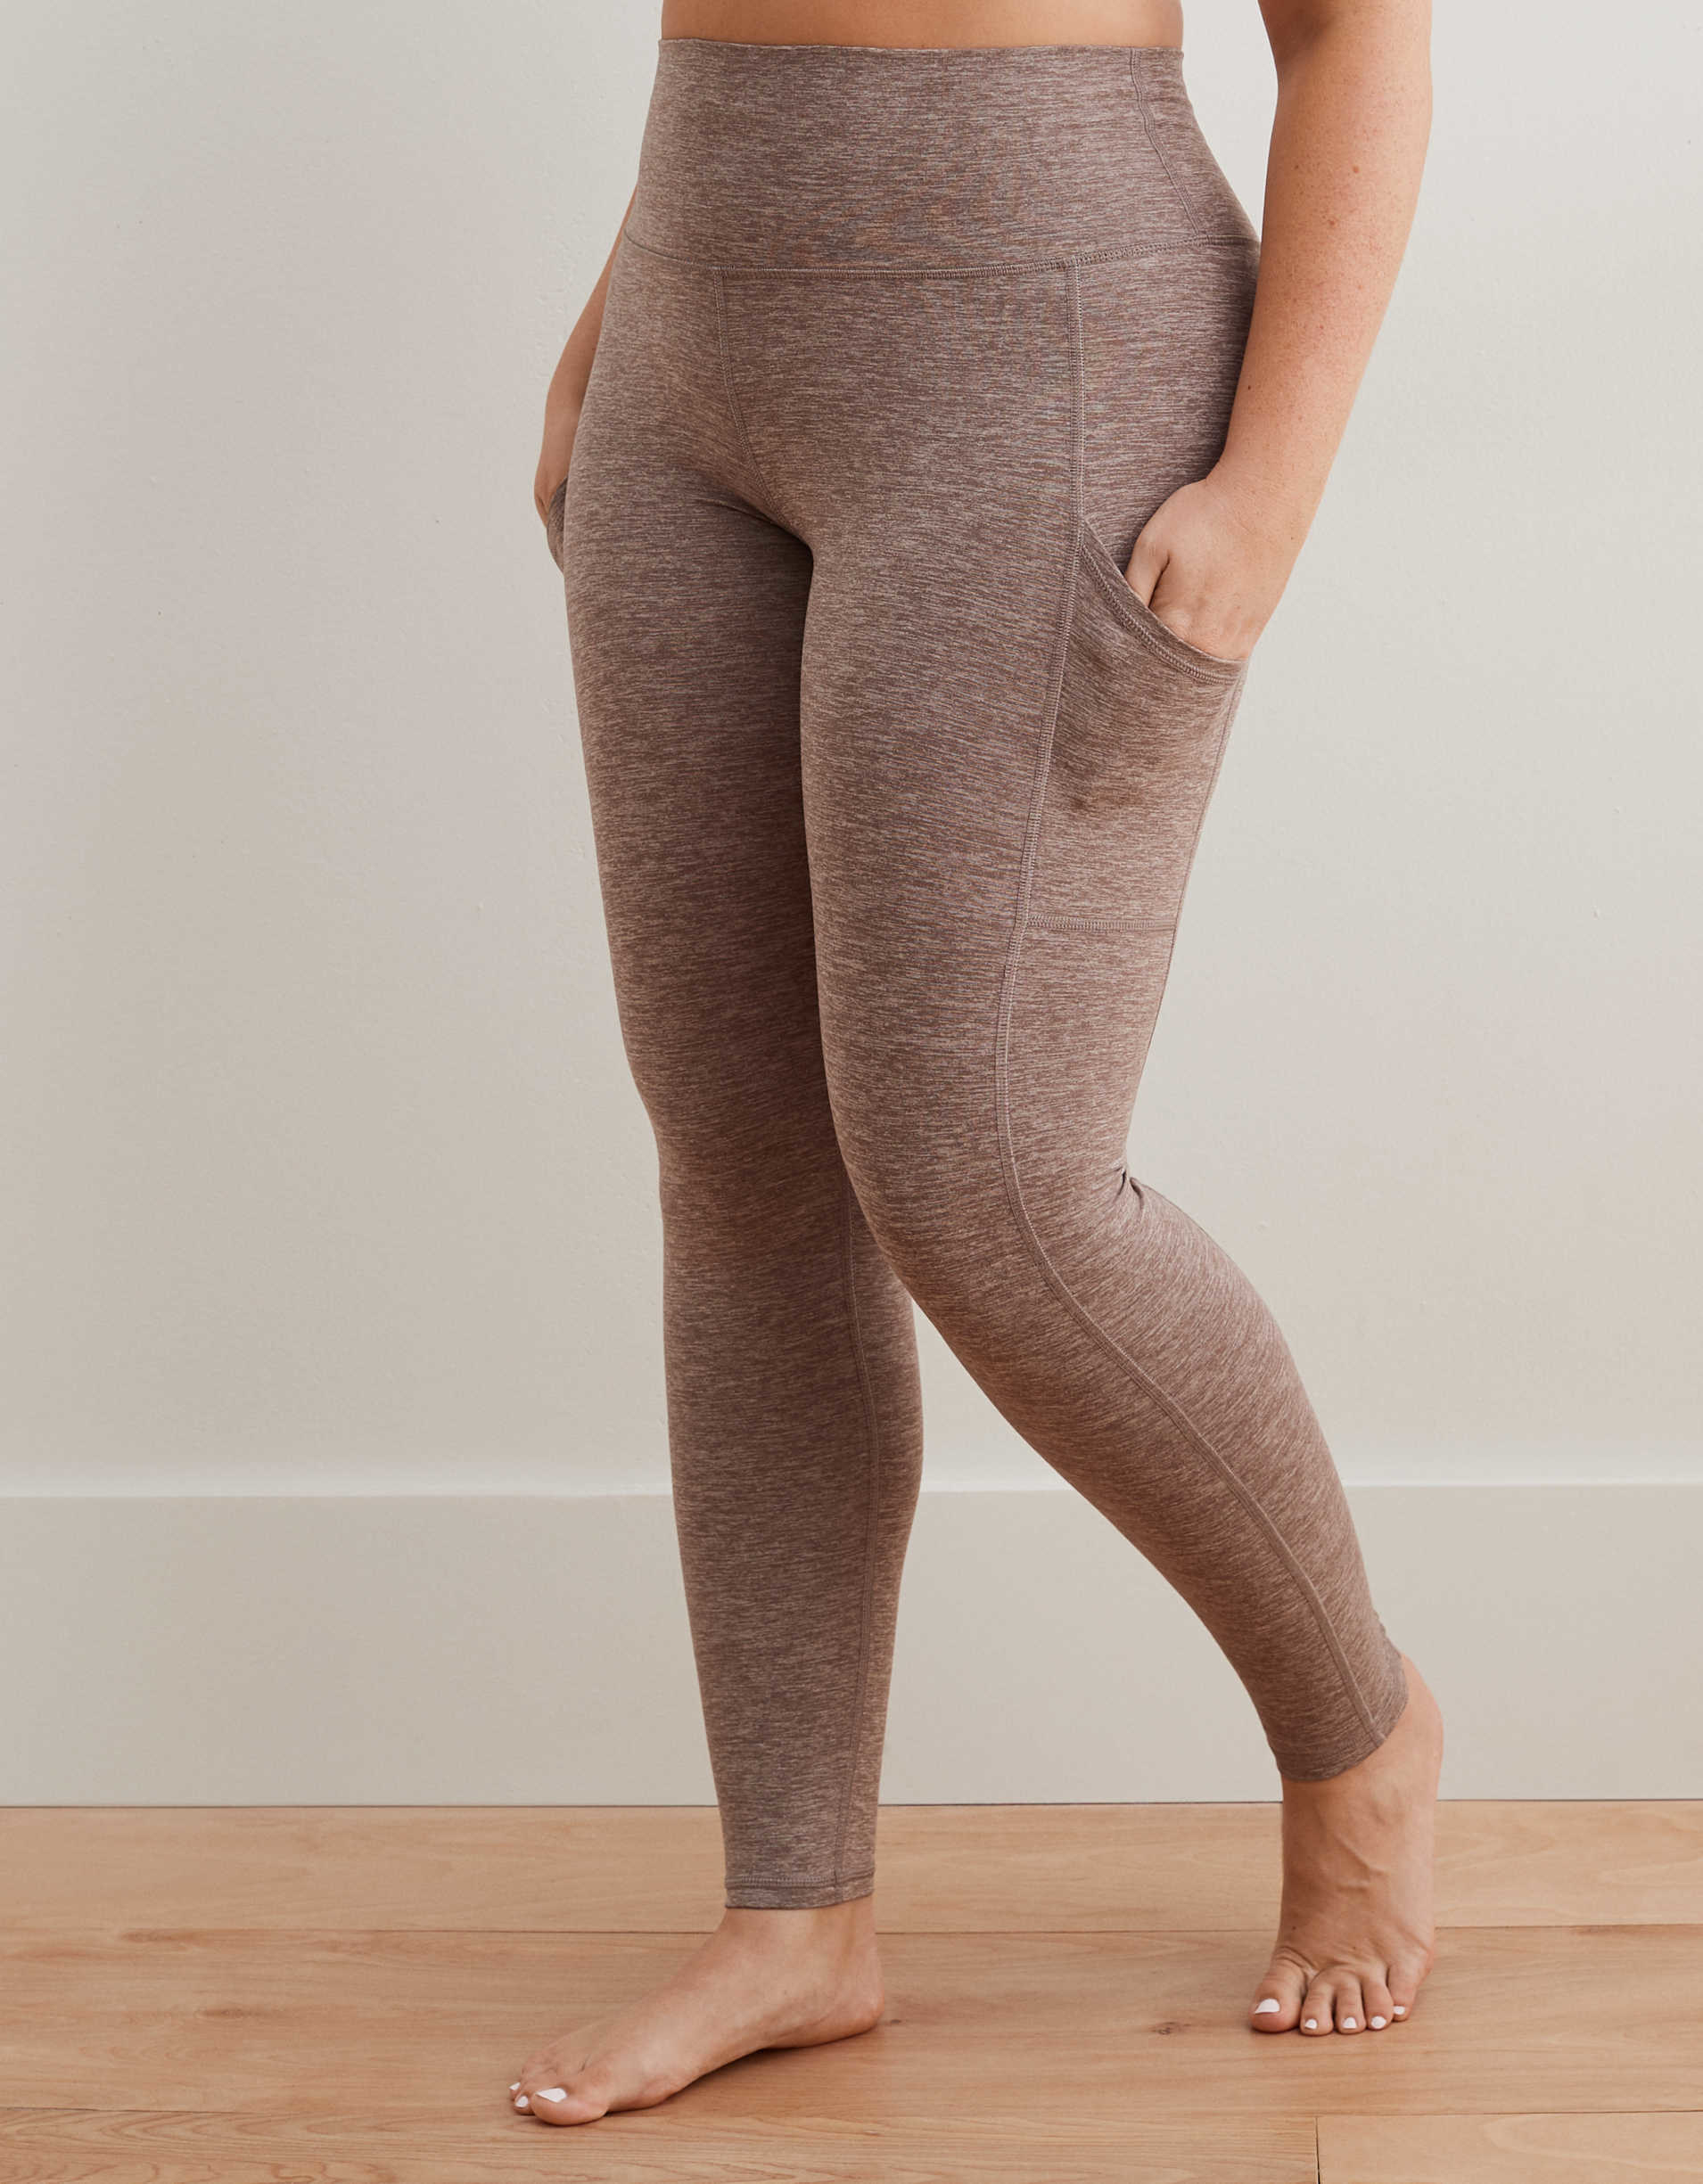 model in purple and grey heathered high waisted leggings with pockets on the side of the thighs